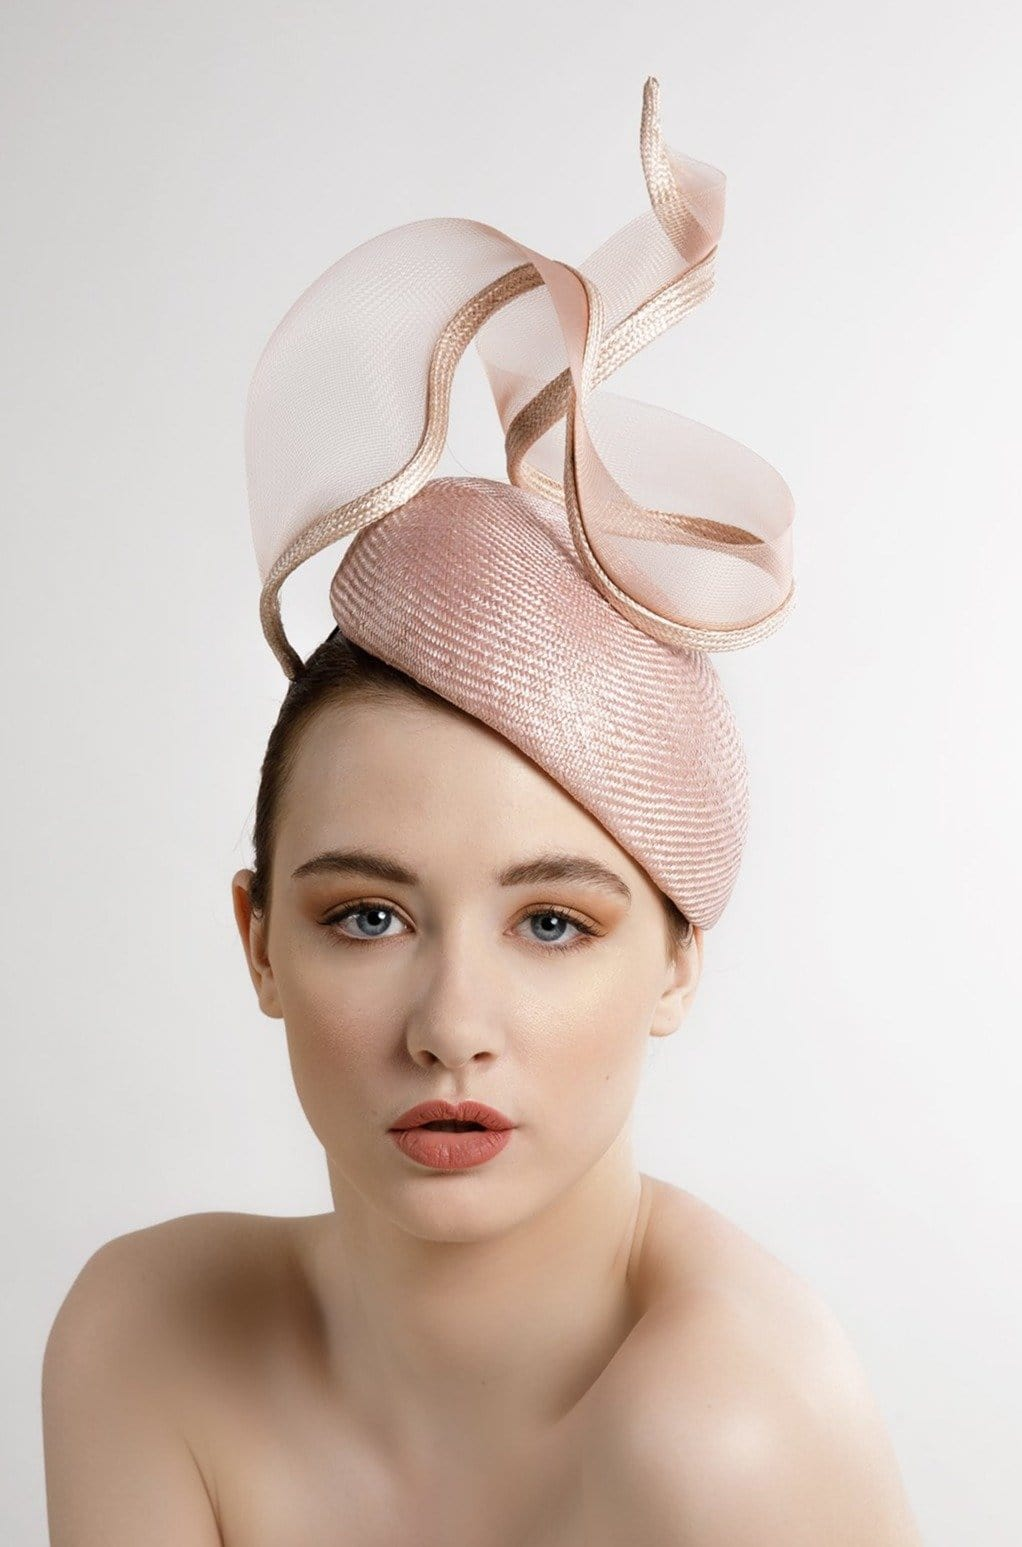 Crin Twist  -  Margot  -  Maggie Mowbray Millineryのパリ麦藁帽子